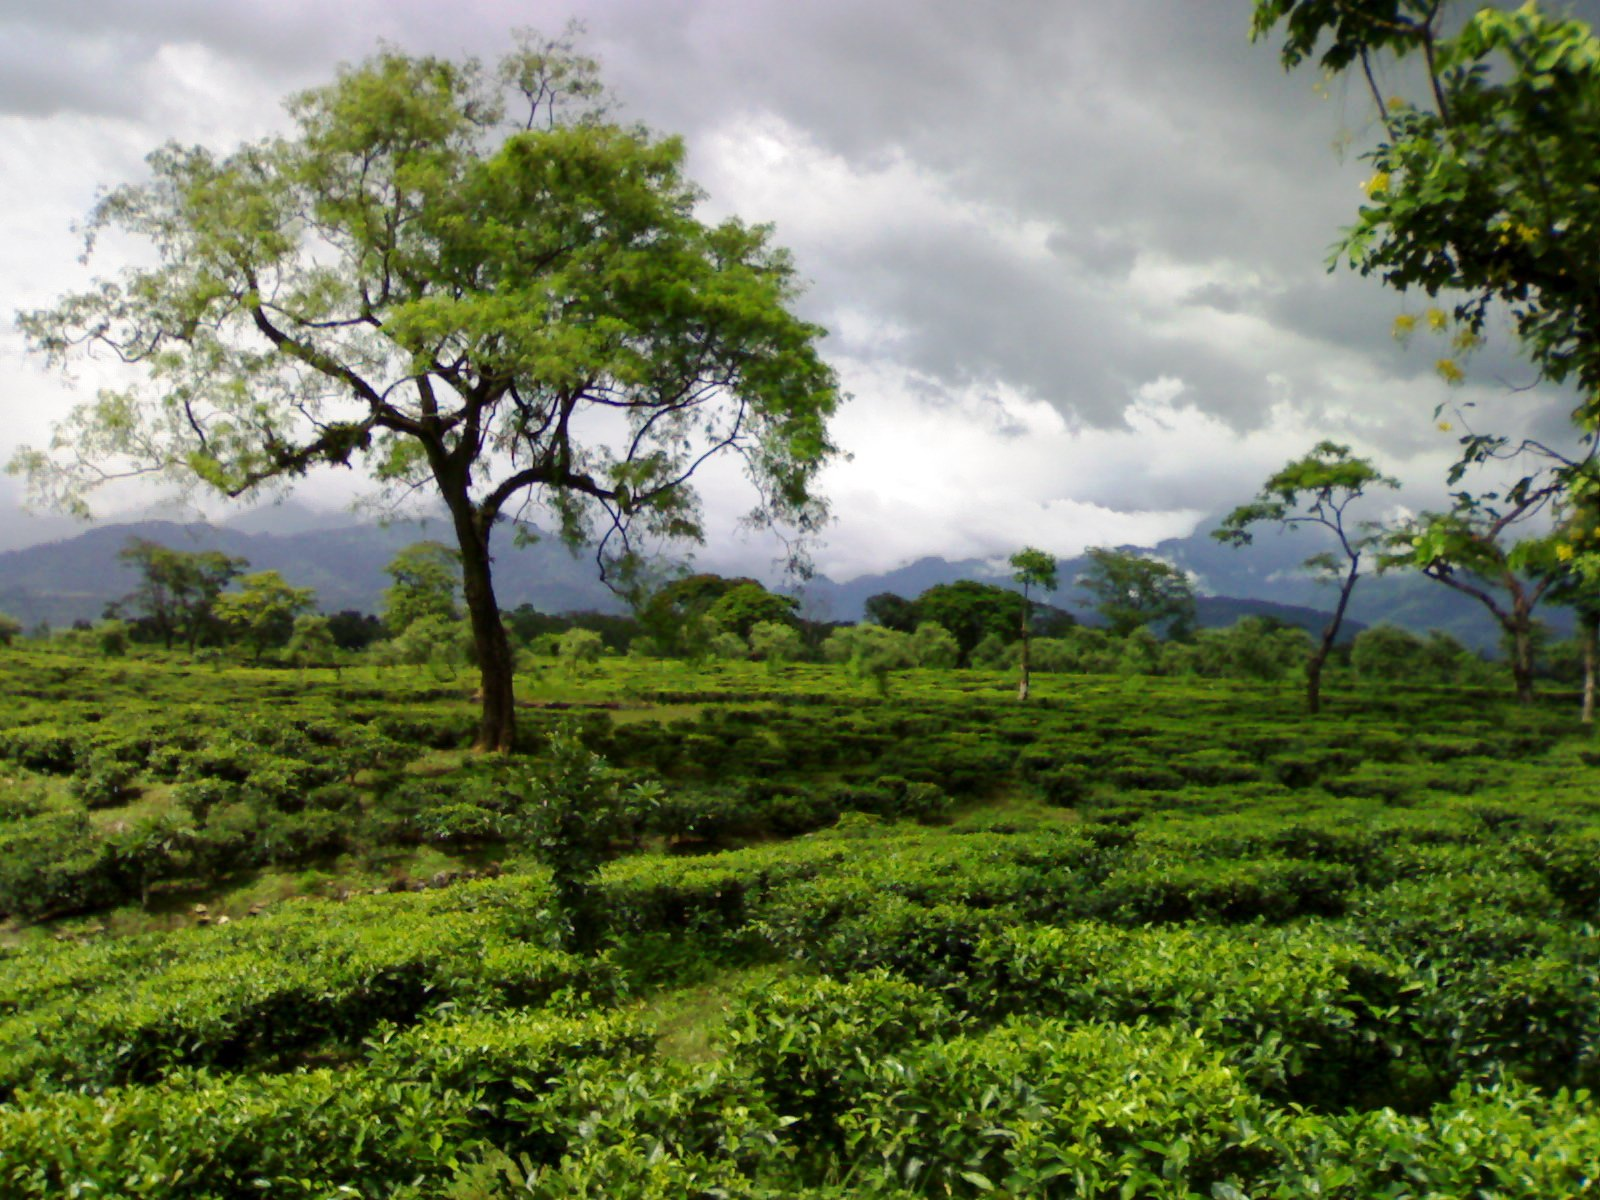 File:Tea garden in dooars.jpg - Wikimedia Commonstea garden